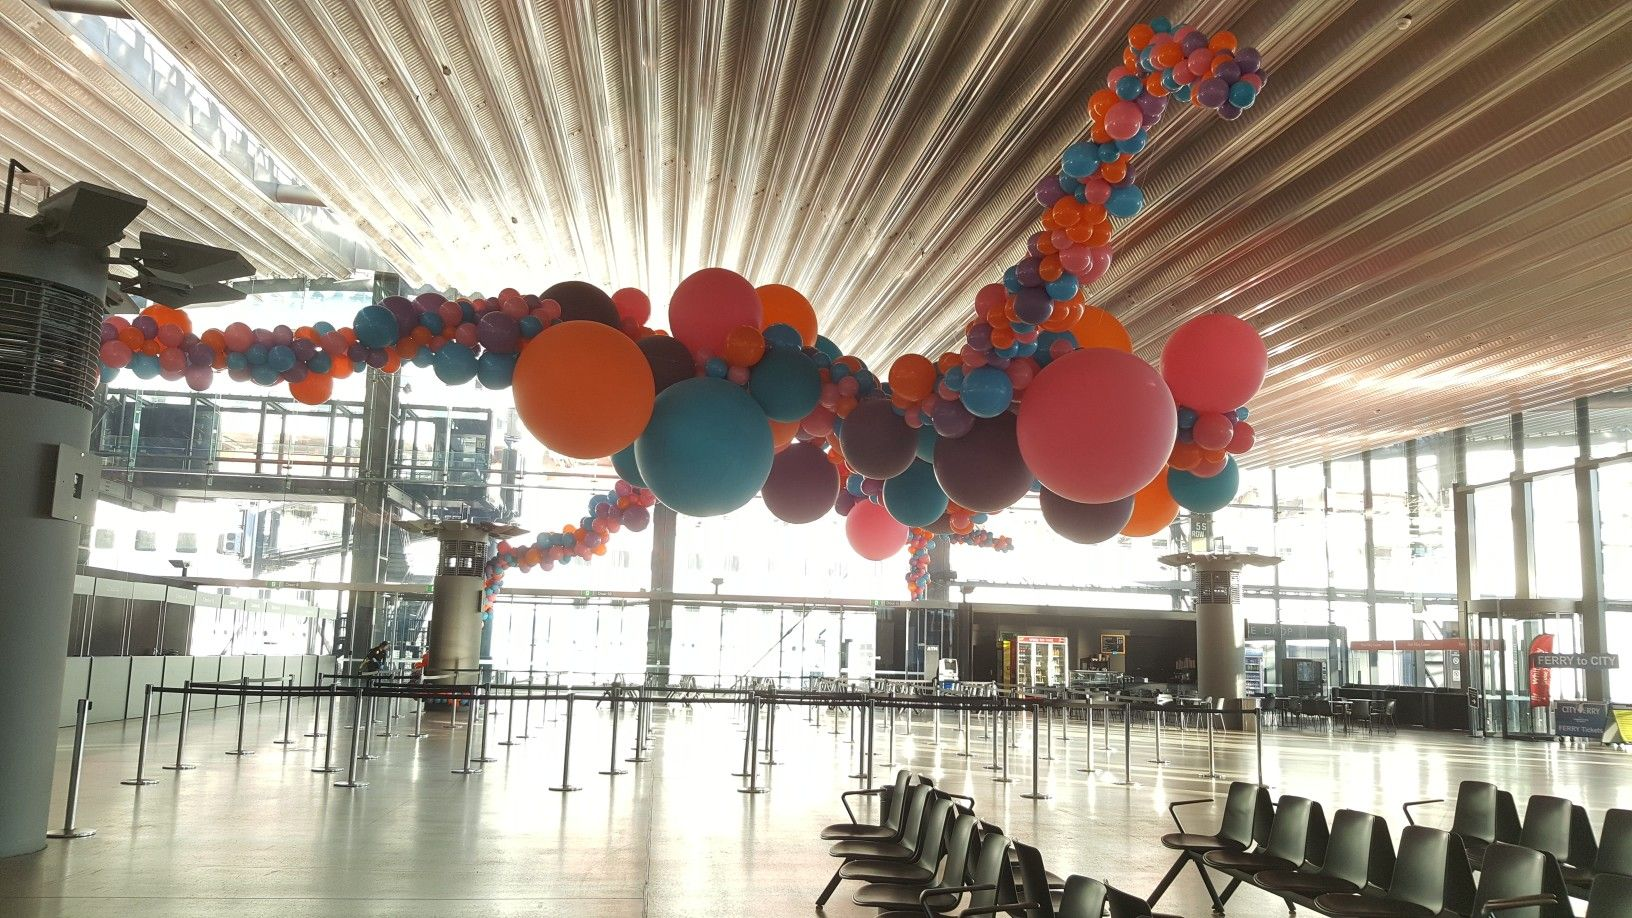 Giant organic installation using balloons up to